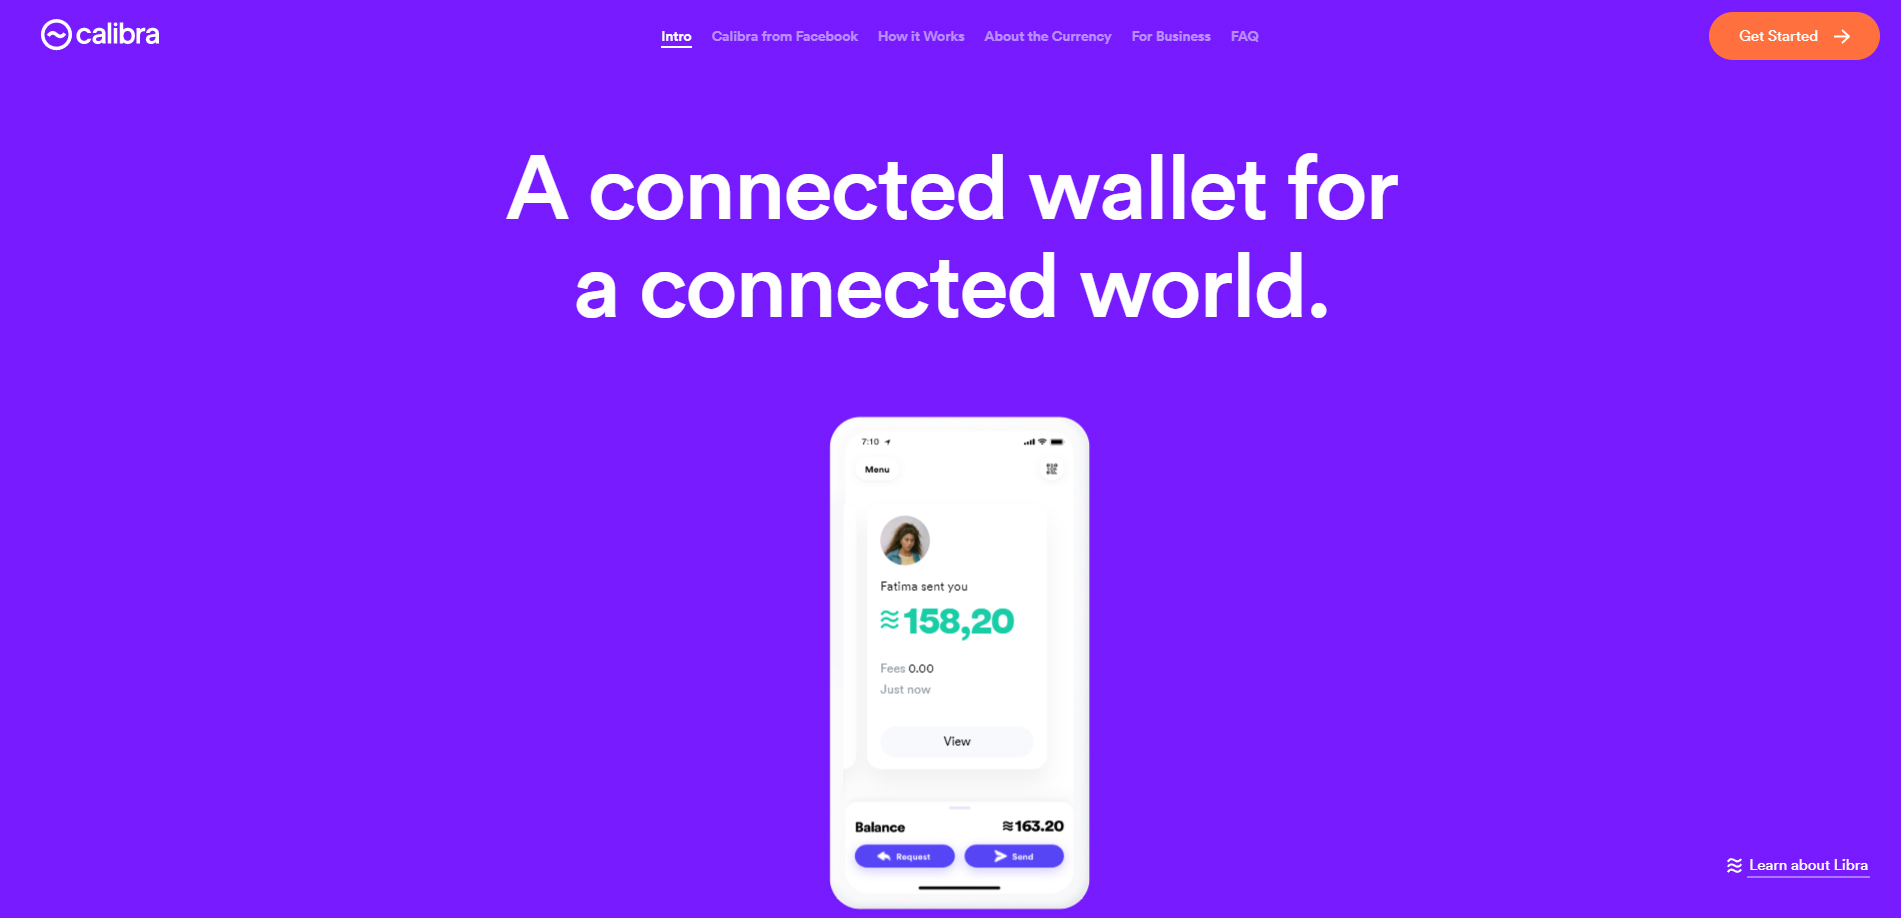 Facebook Libra cryptocurrency platform Calibra